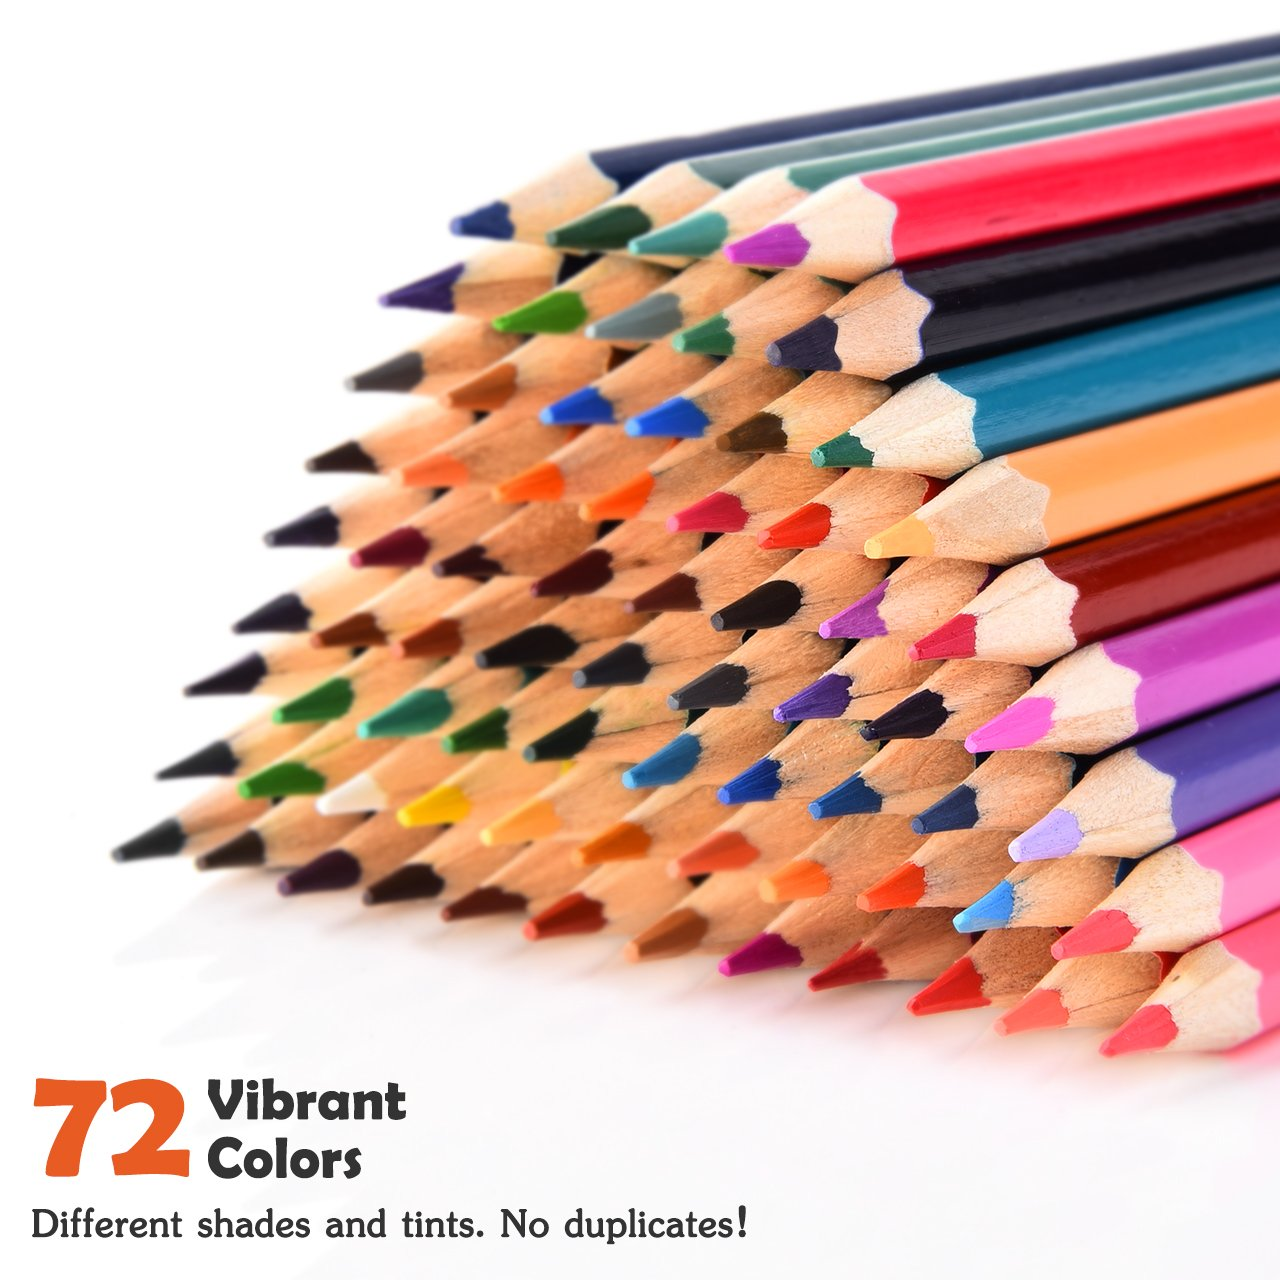 Colored Pencils, Atmoko Color Pencils Set with 72 Colored Pensils, Easy to Sharpen, [Hard to Break], Colored Pensils Bulk for Kids and Adults, Assorted Colors by ATMOKO (Image #2)